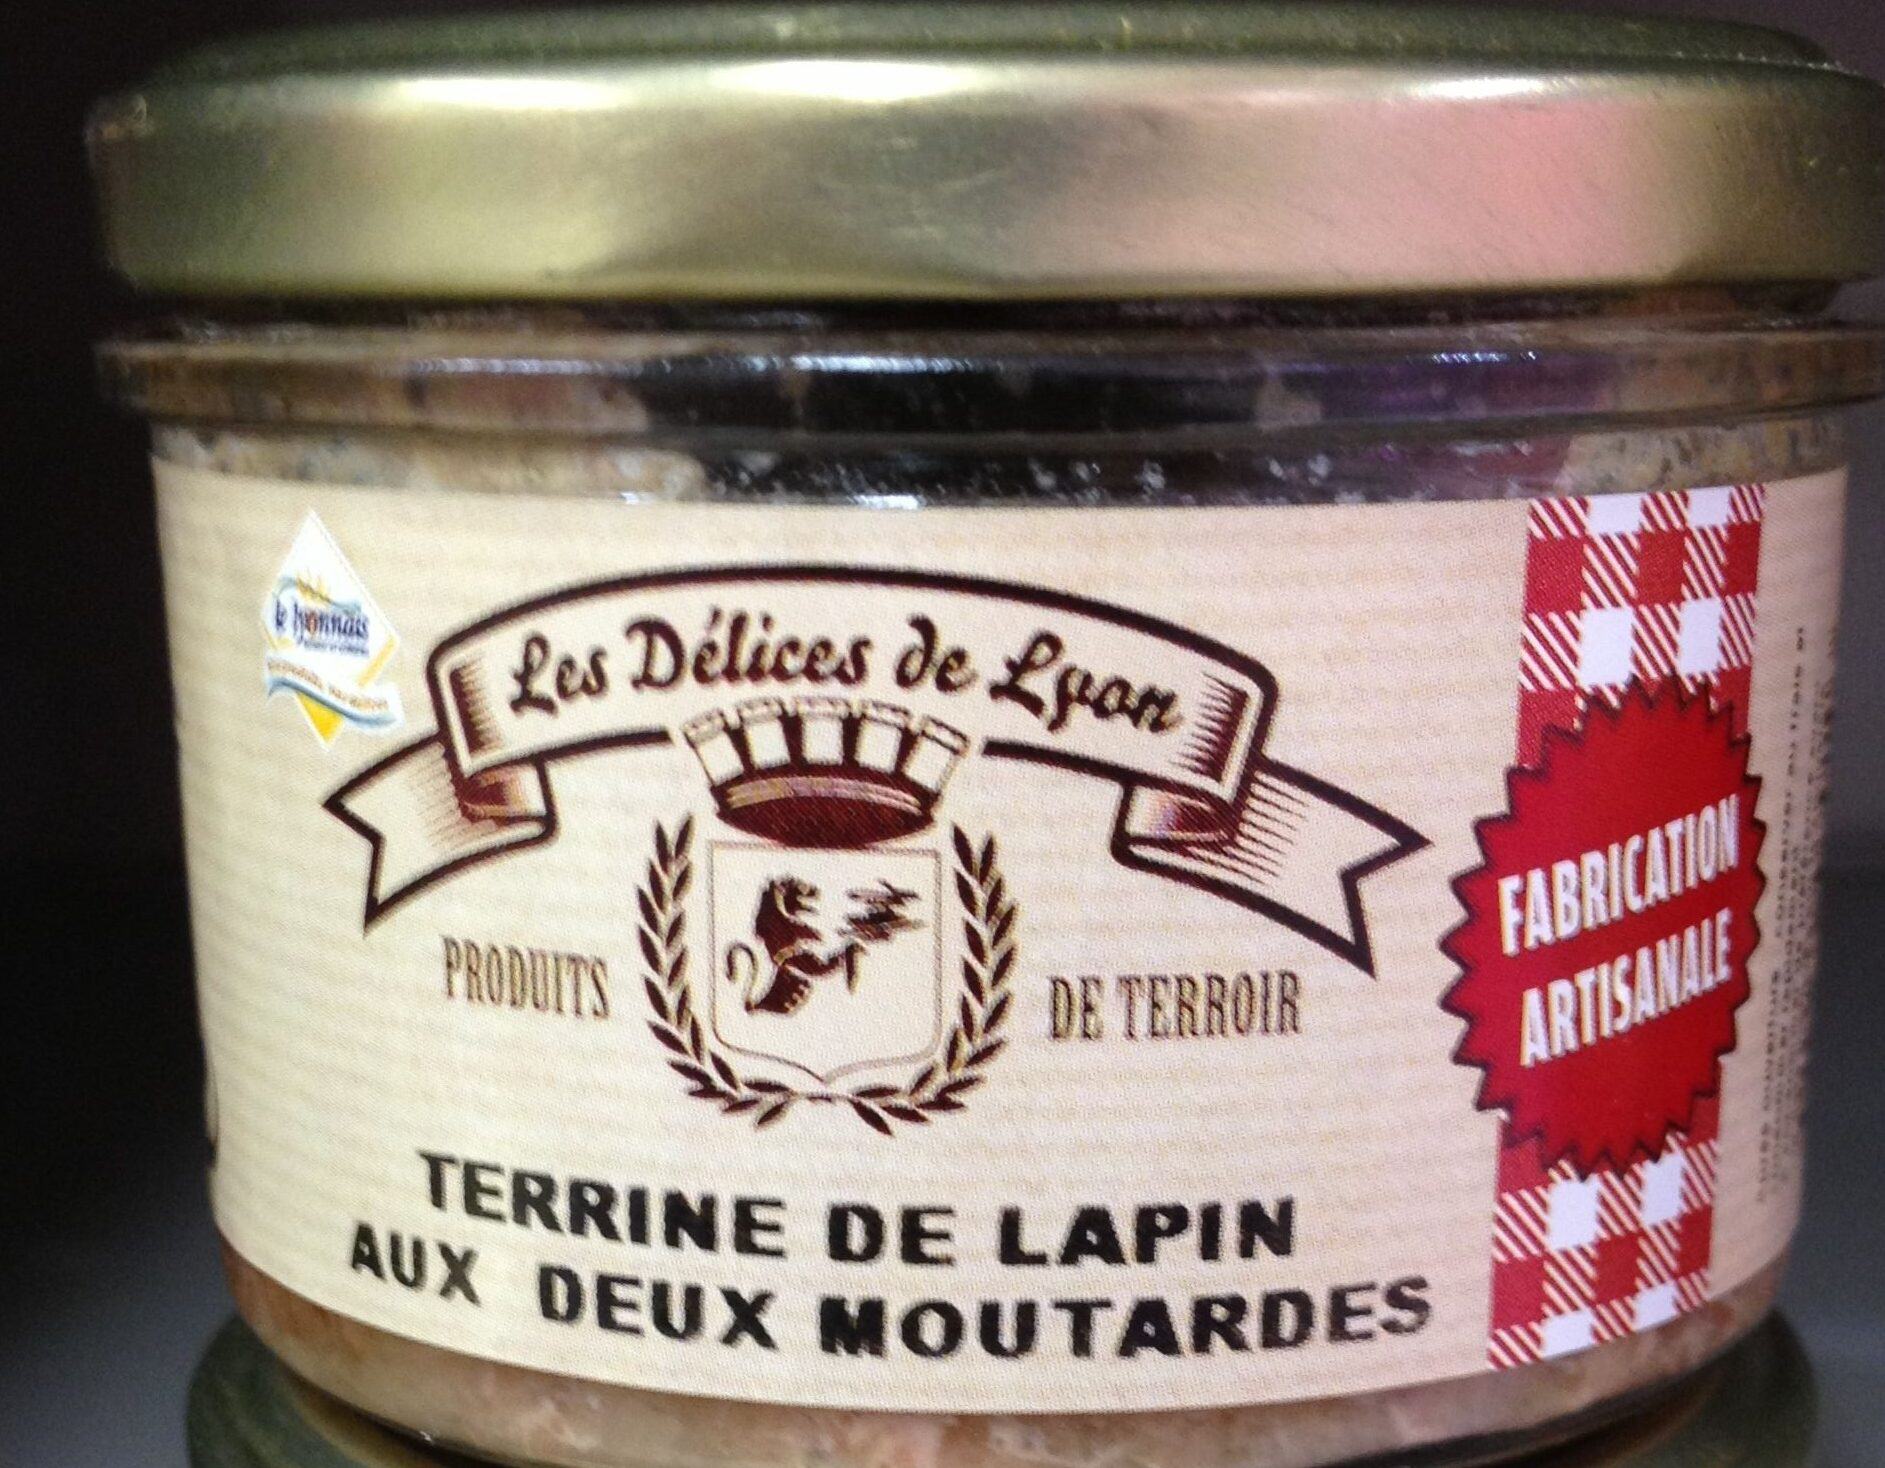 Terrine de lapin au deux moutardes - Product